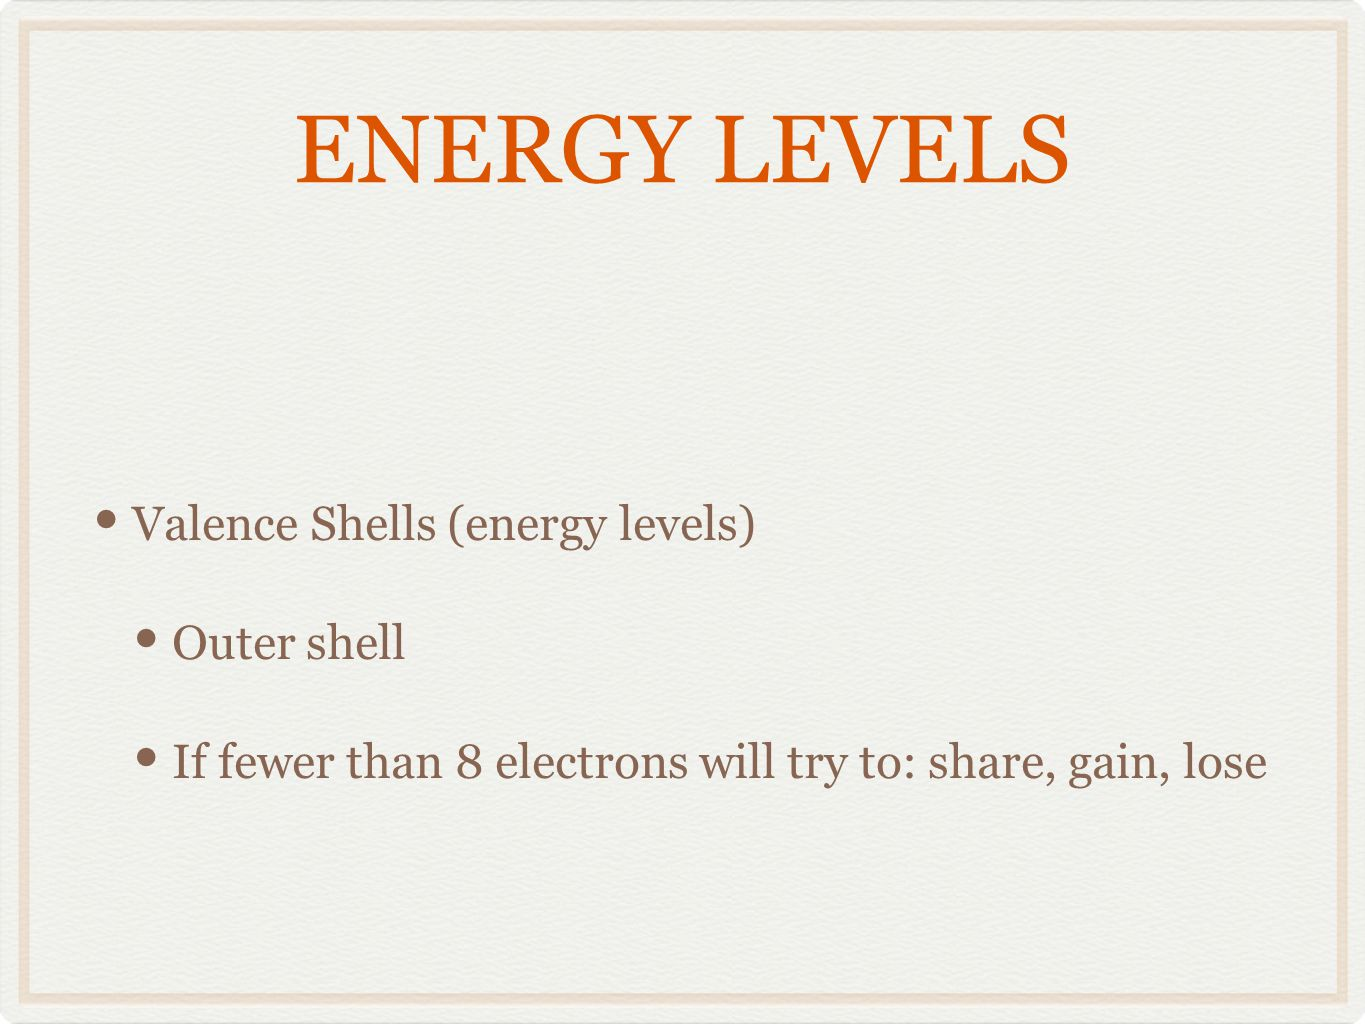 ENERGY LEVELS Valence Shells (energy levels) Outer shell